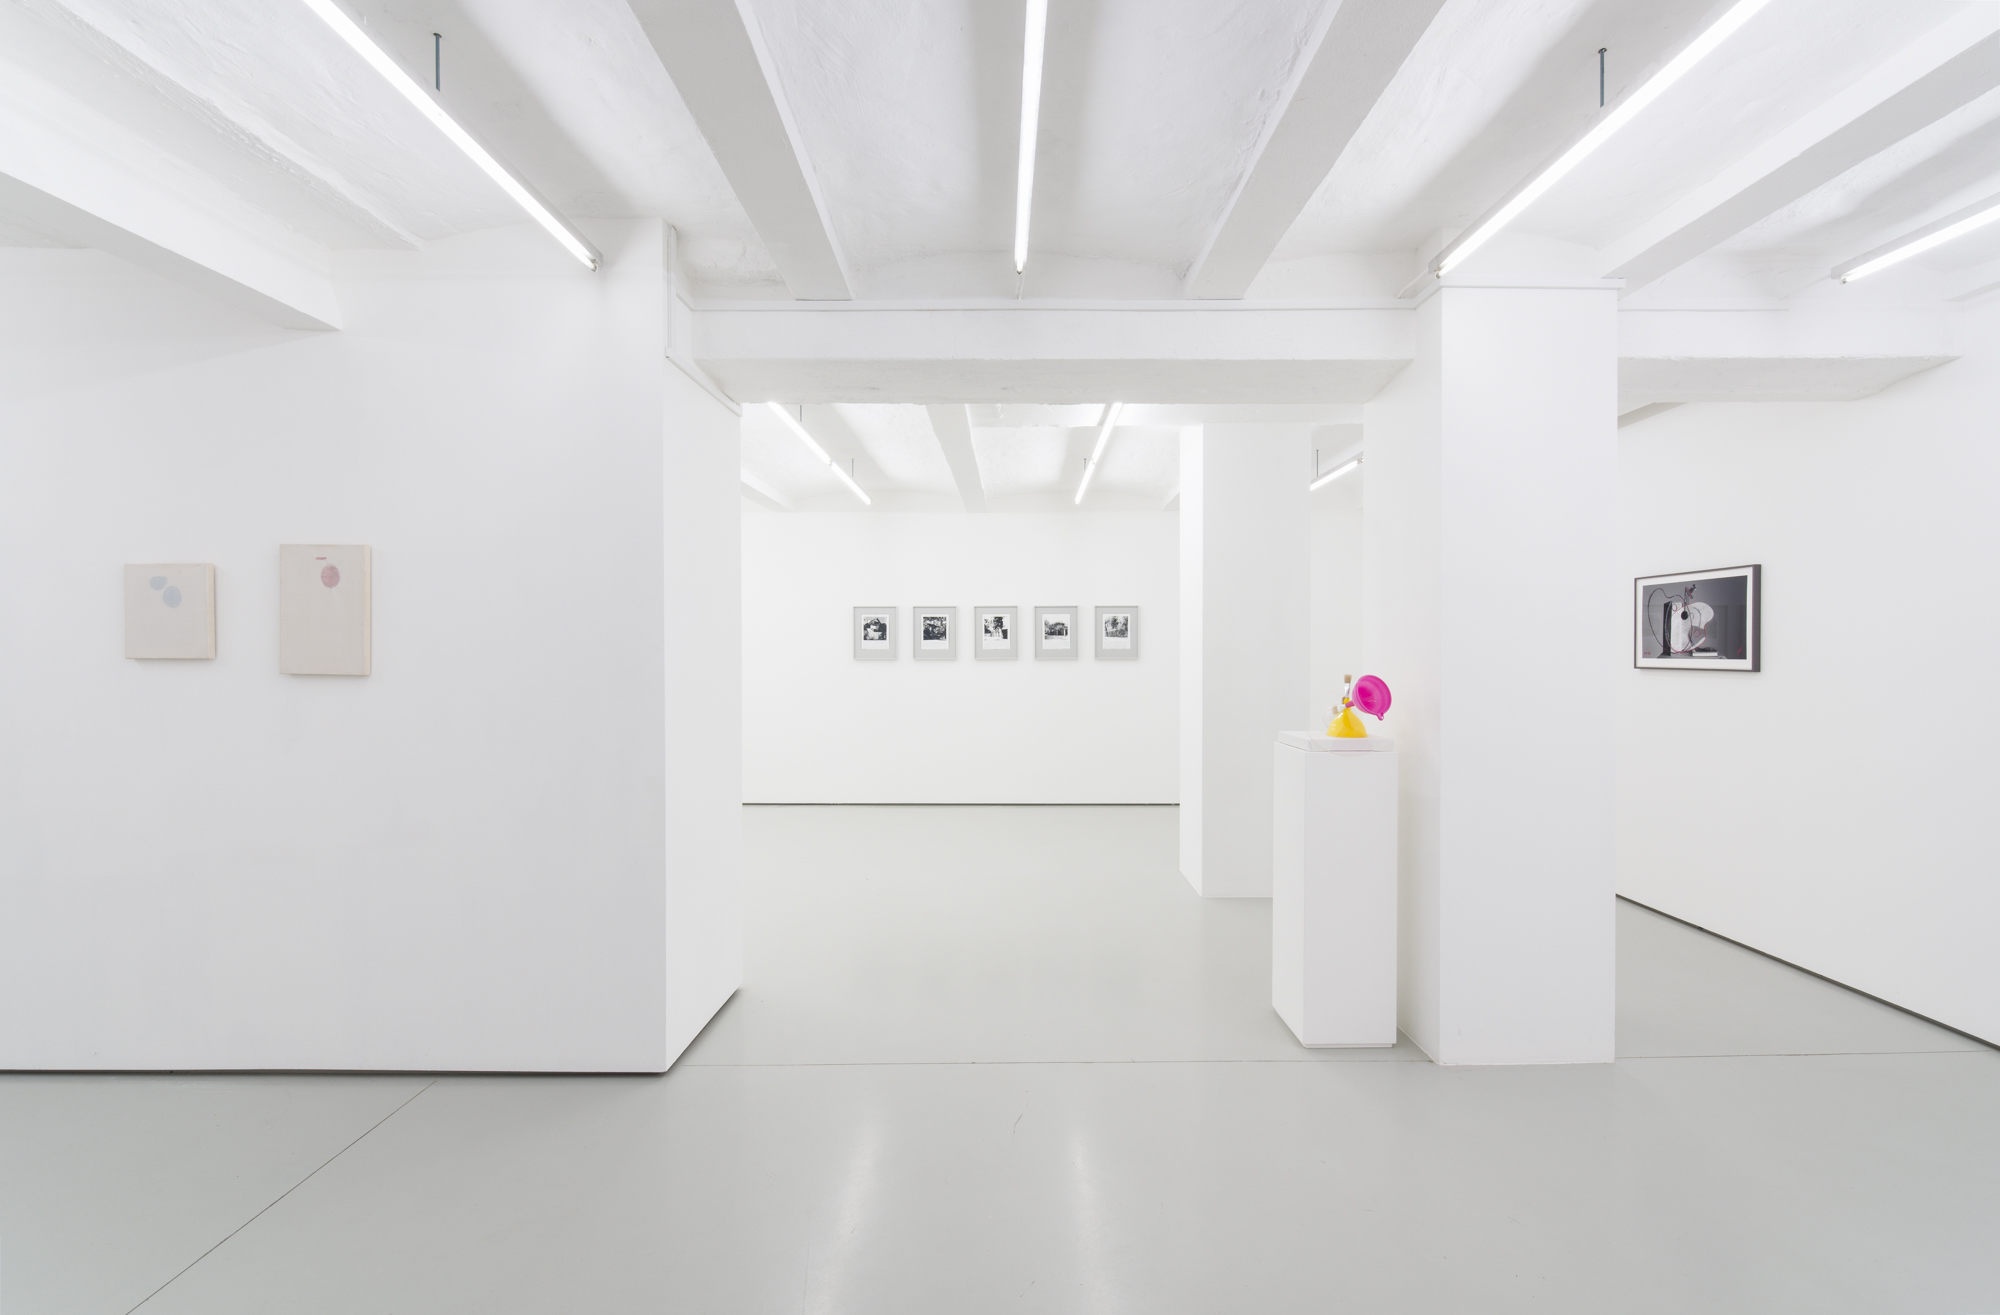 Goran Trbuljak. From Self Ironic to Self Sardonic. With 40 years of painting. Installation view at Gregor Podnar, Berlin, 2021. Photo: Marcus Schneider